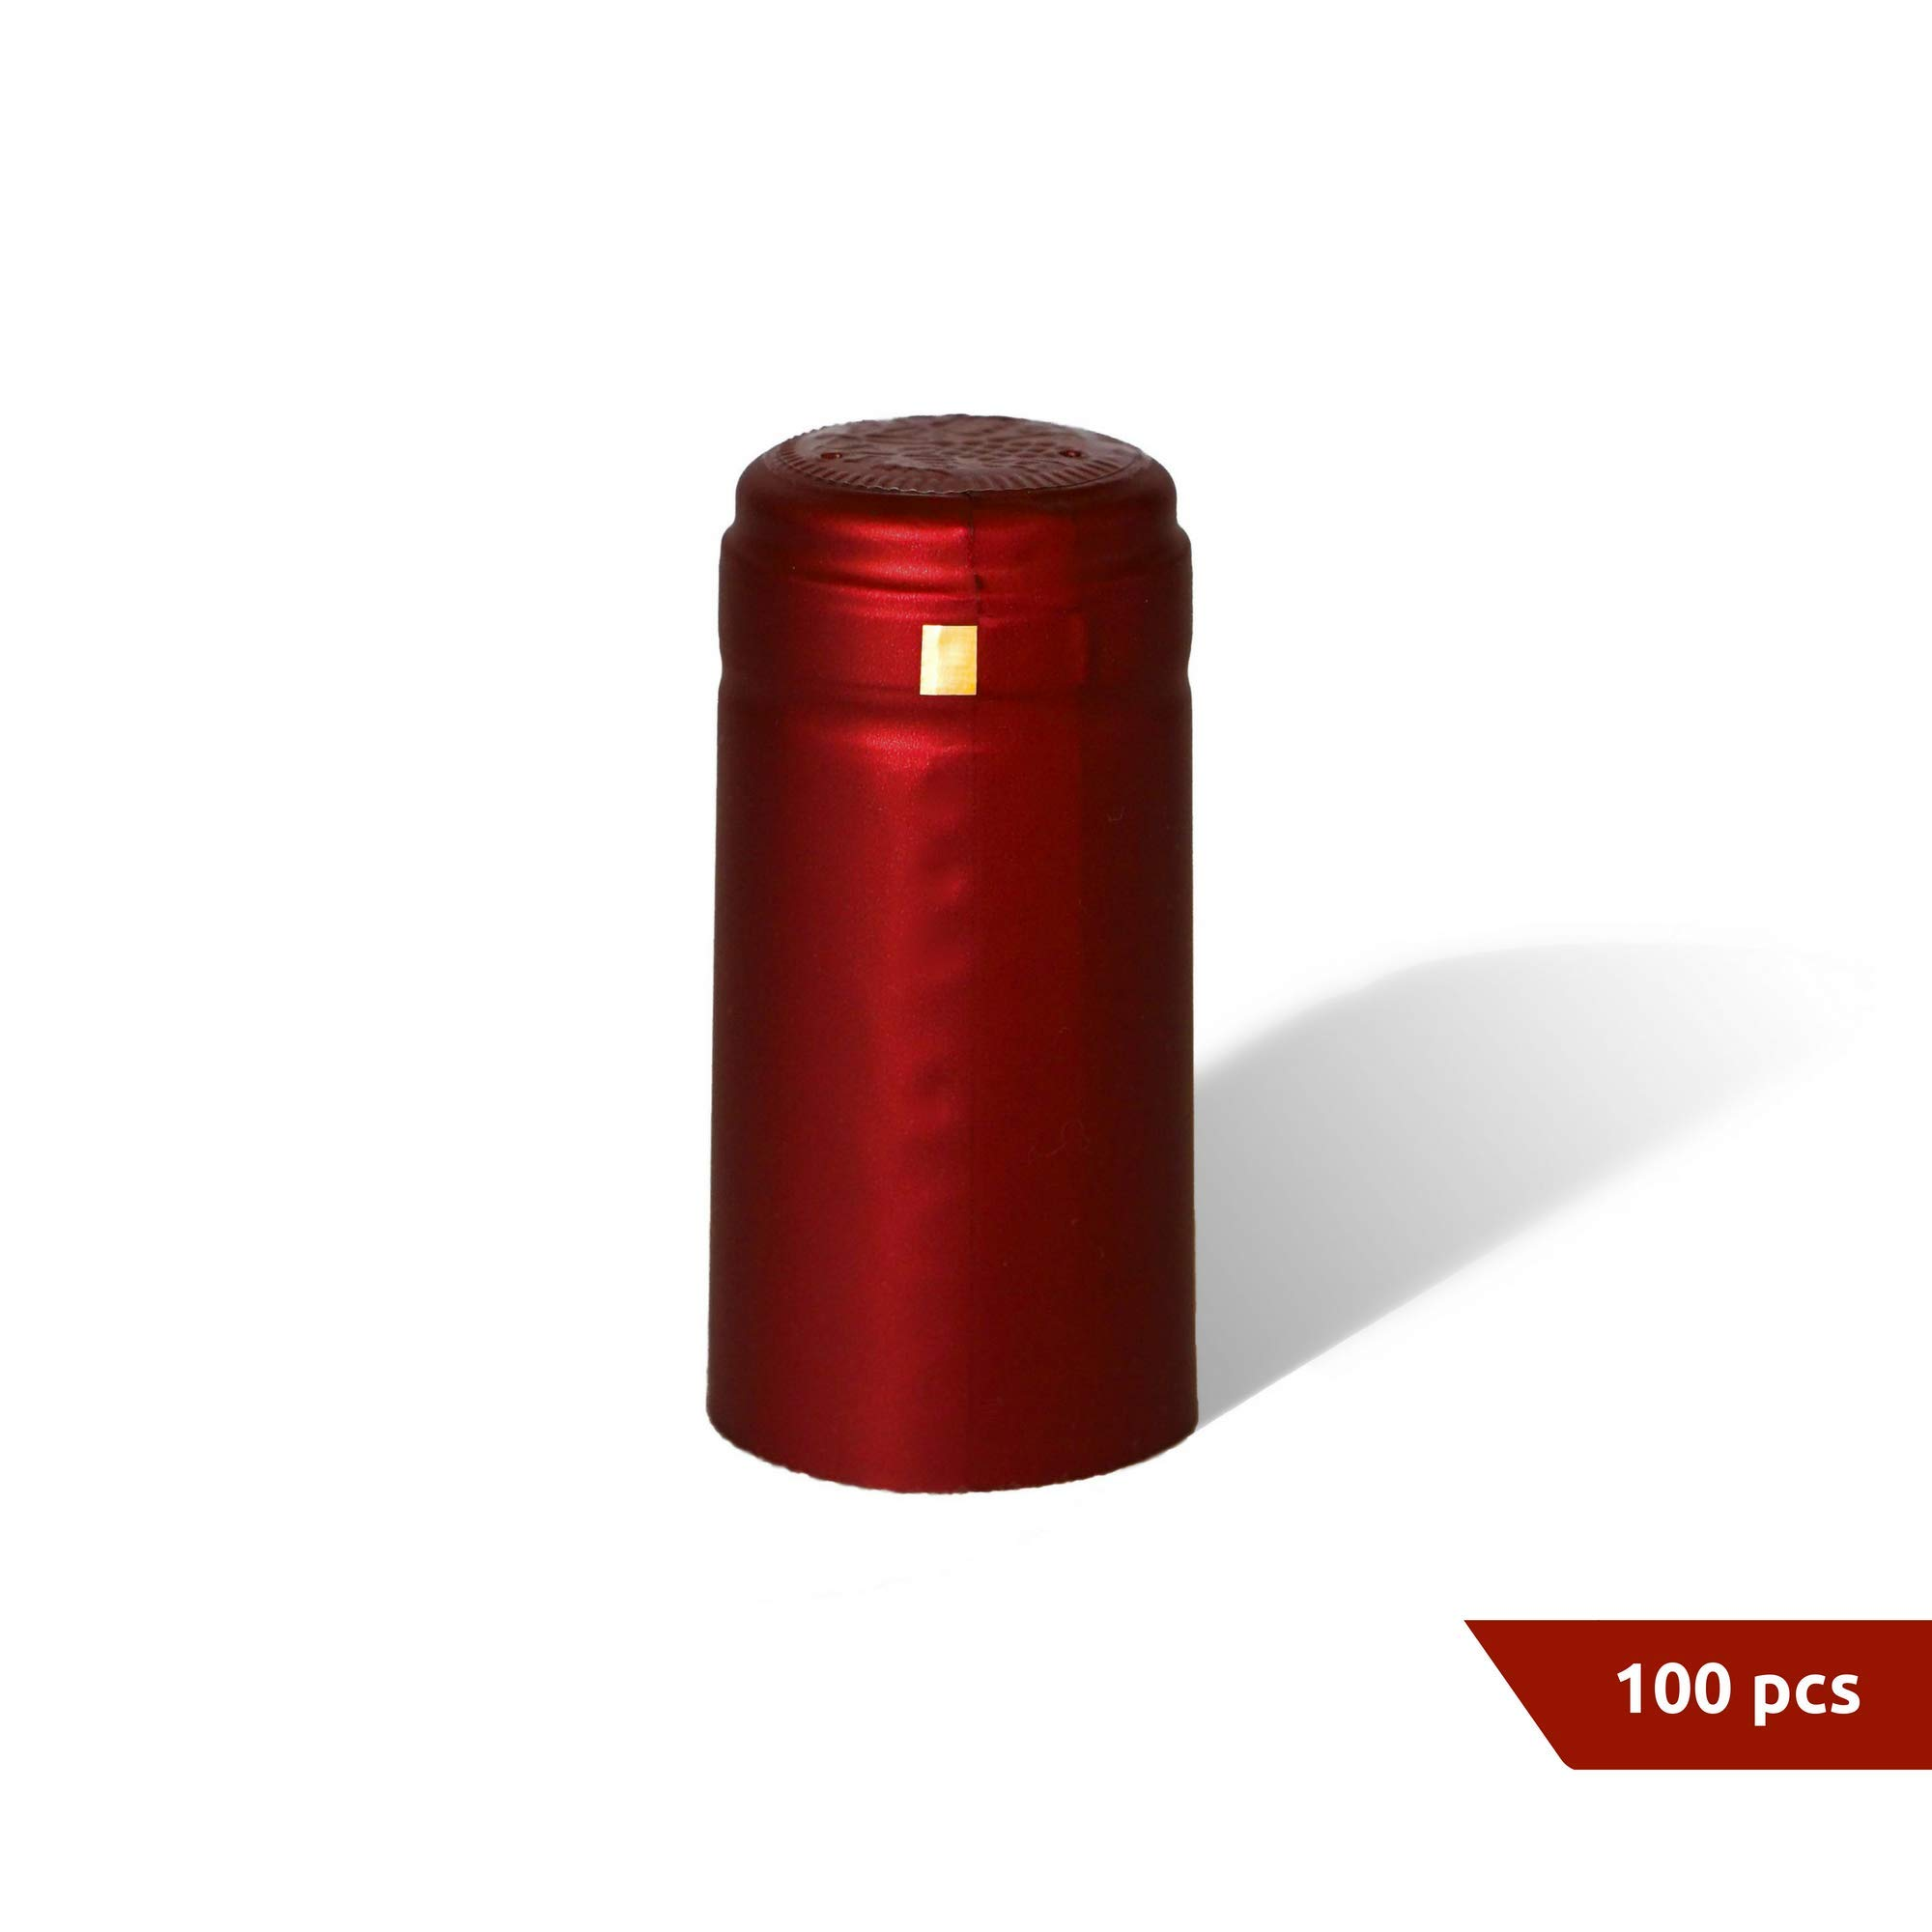 PVC heat shrink capsules with tear tab I Suitable for wine bottles I Satin burgundy finish, premium quality shrink bottle sleeves for professional and home use